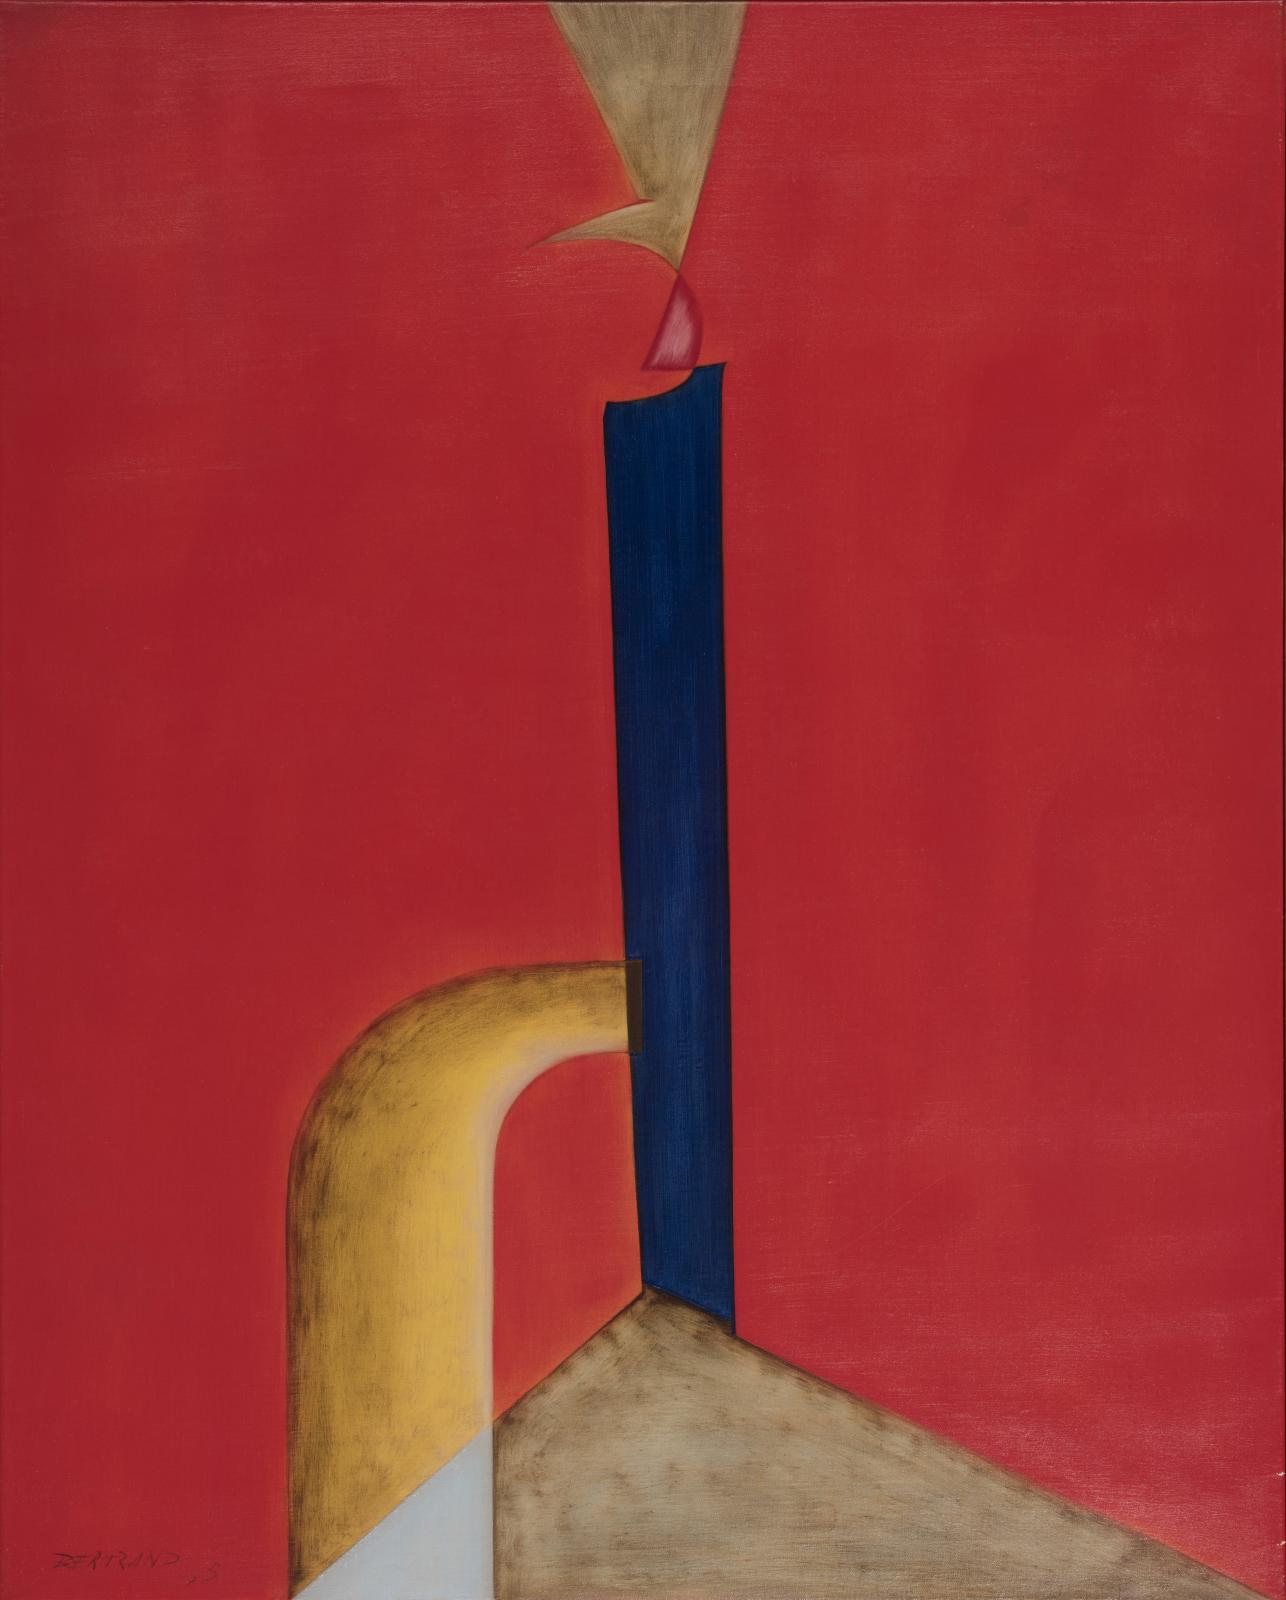 Gaston Bertrand (1910–1994), Evidence du bleu, 1965, oil on canvas, 81 x 65 cm.PHOTO LA PATINOIRE ROYALE